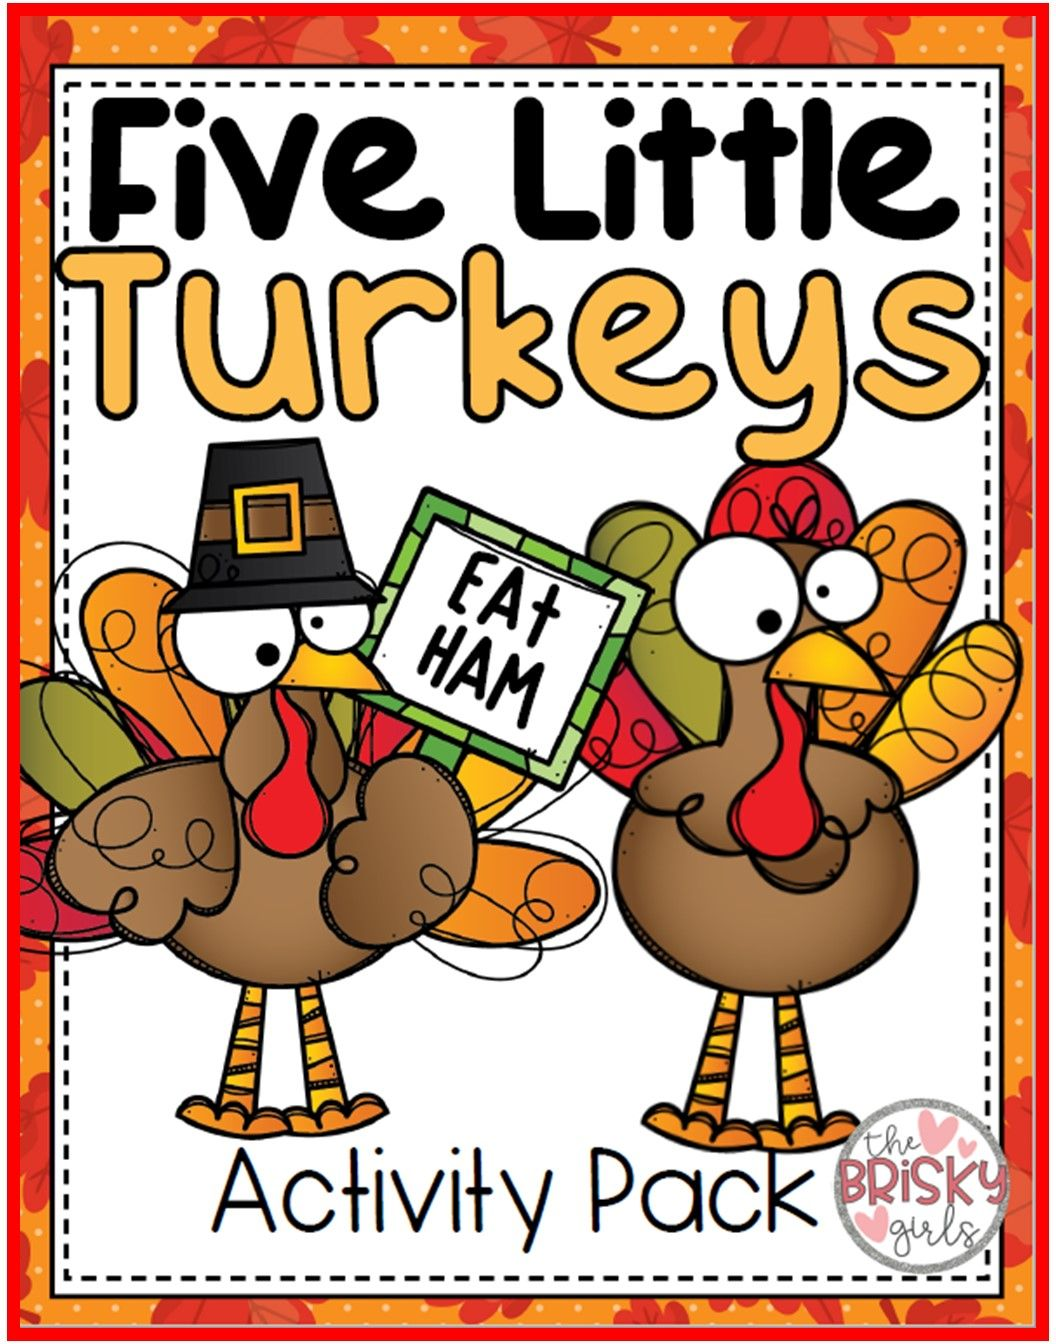 5 Little Turkeys Thanksgiving Activities Prek